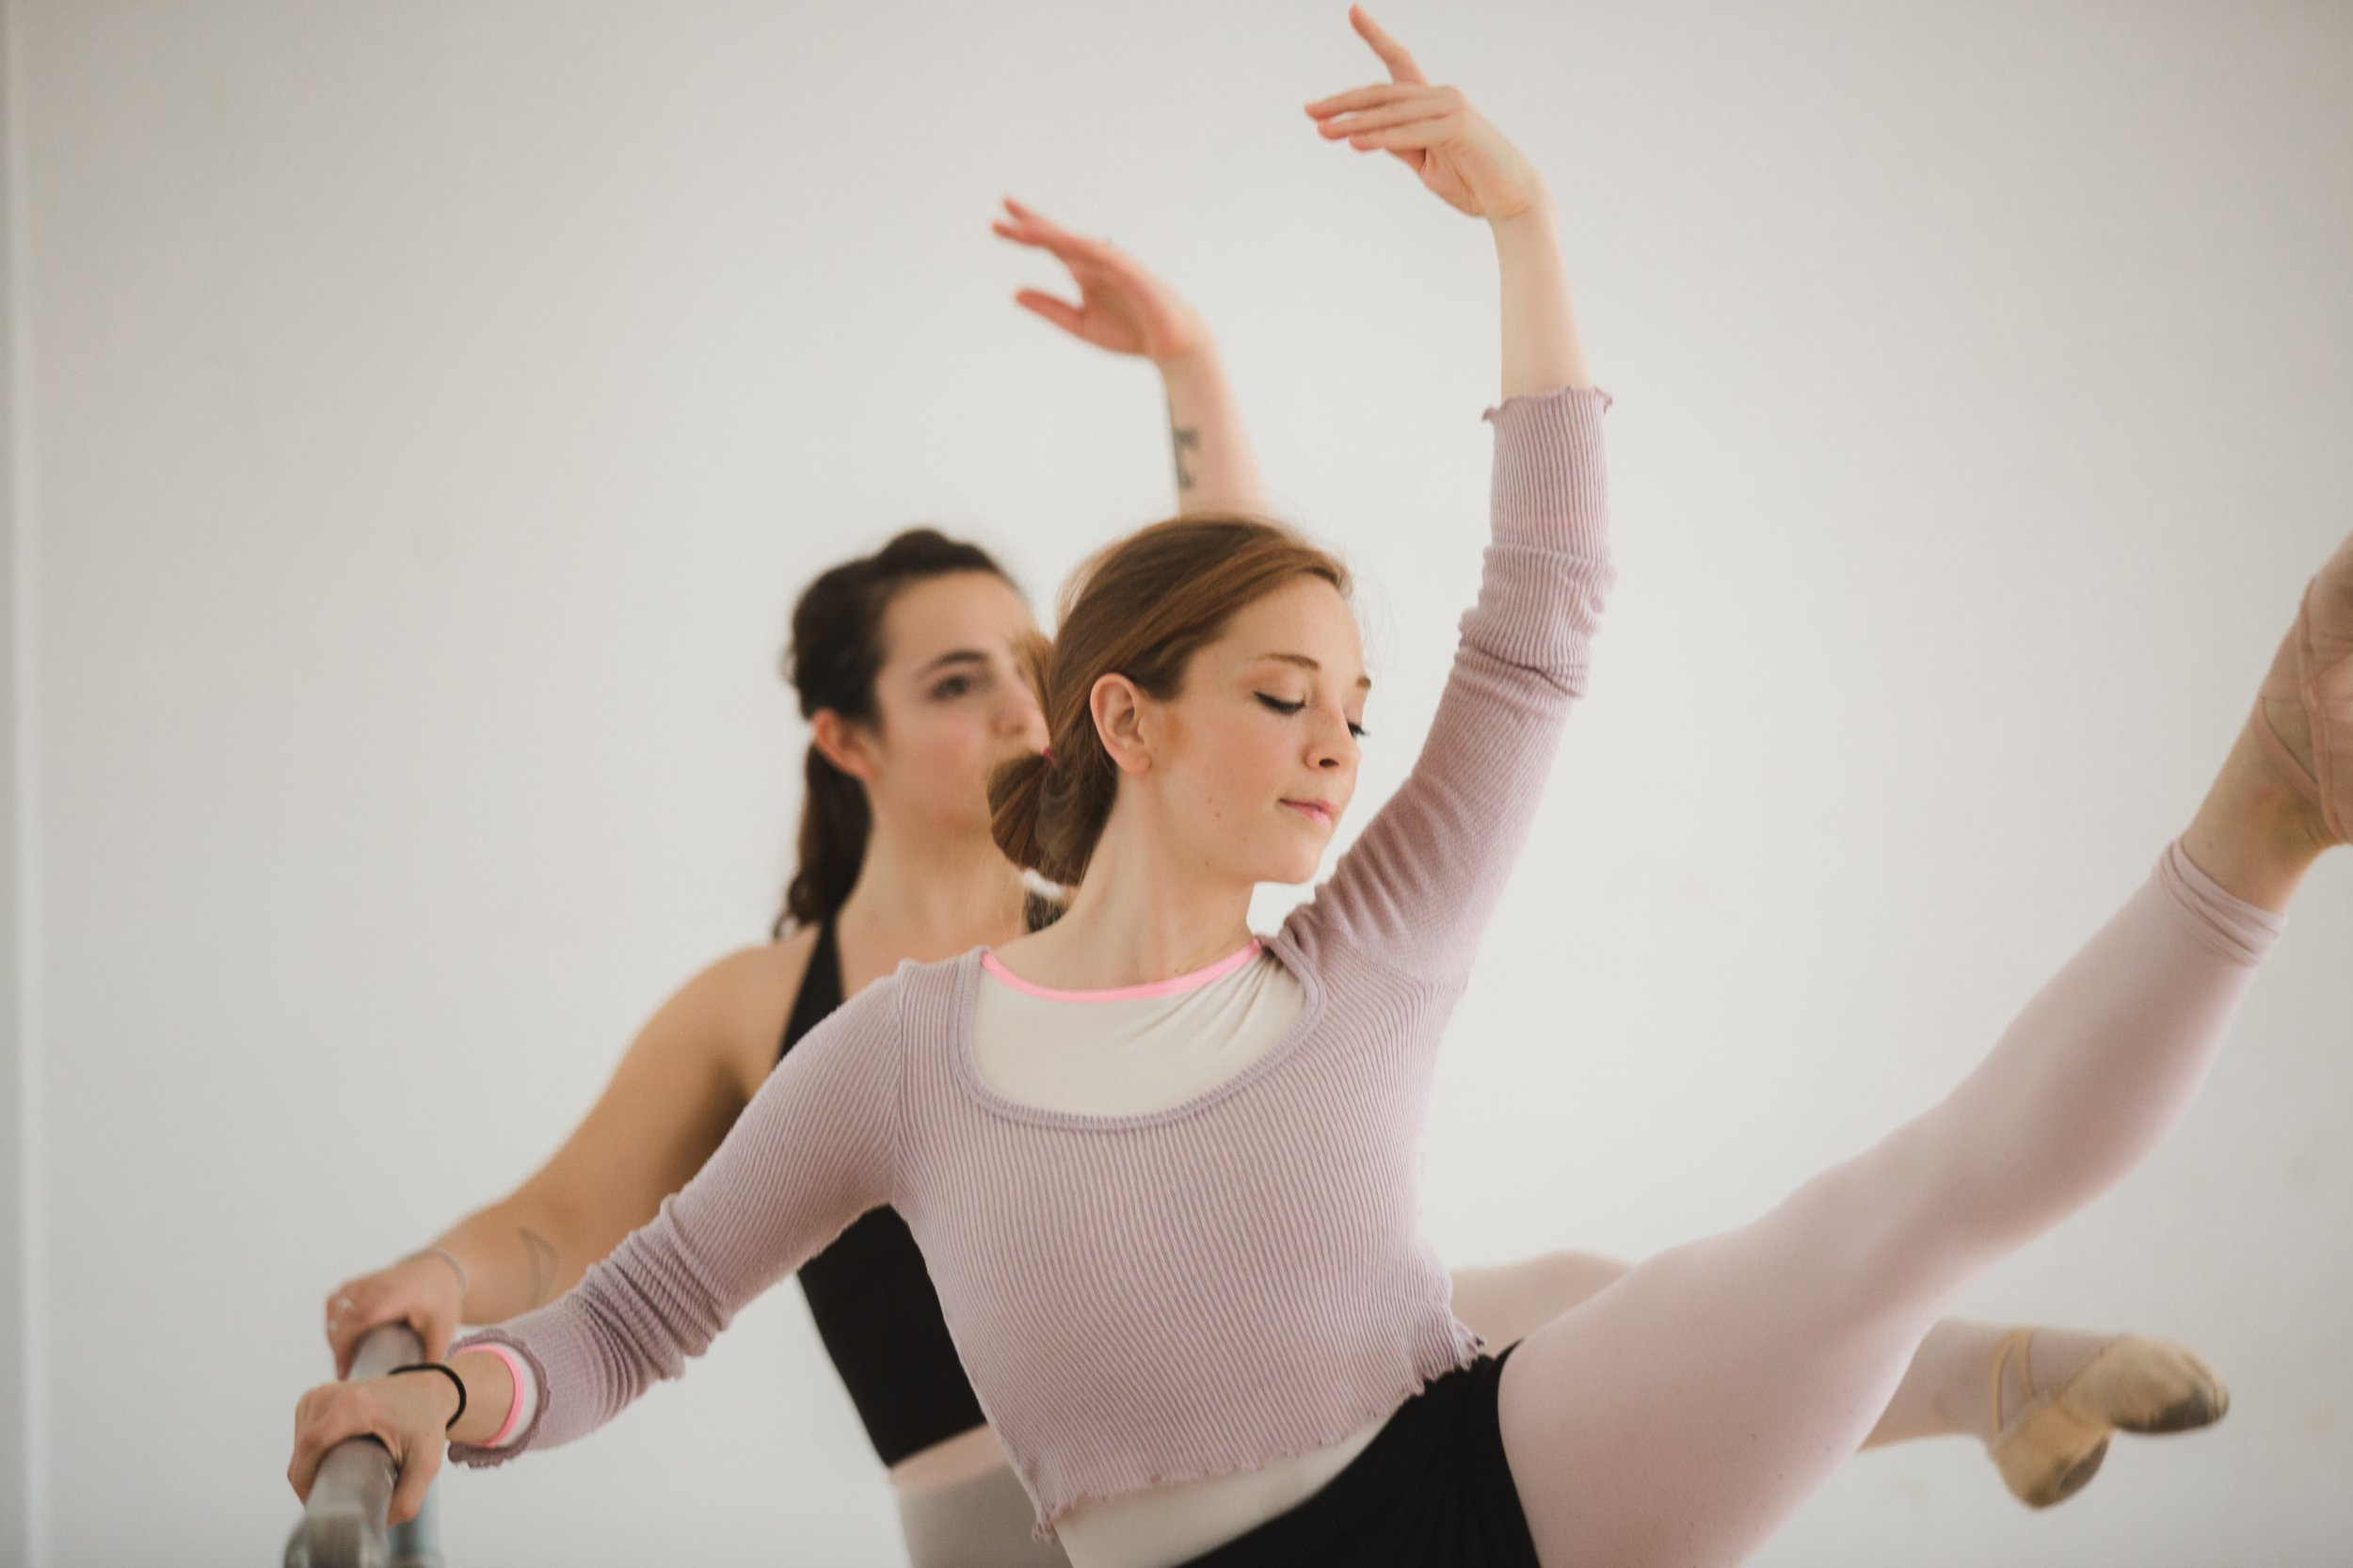 two-dancers-kick-high_4460x4460.jpg